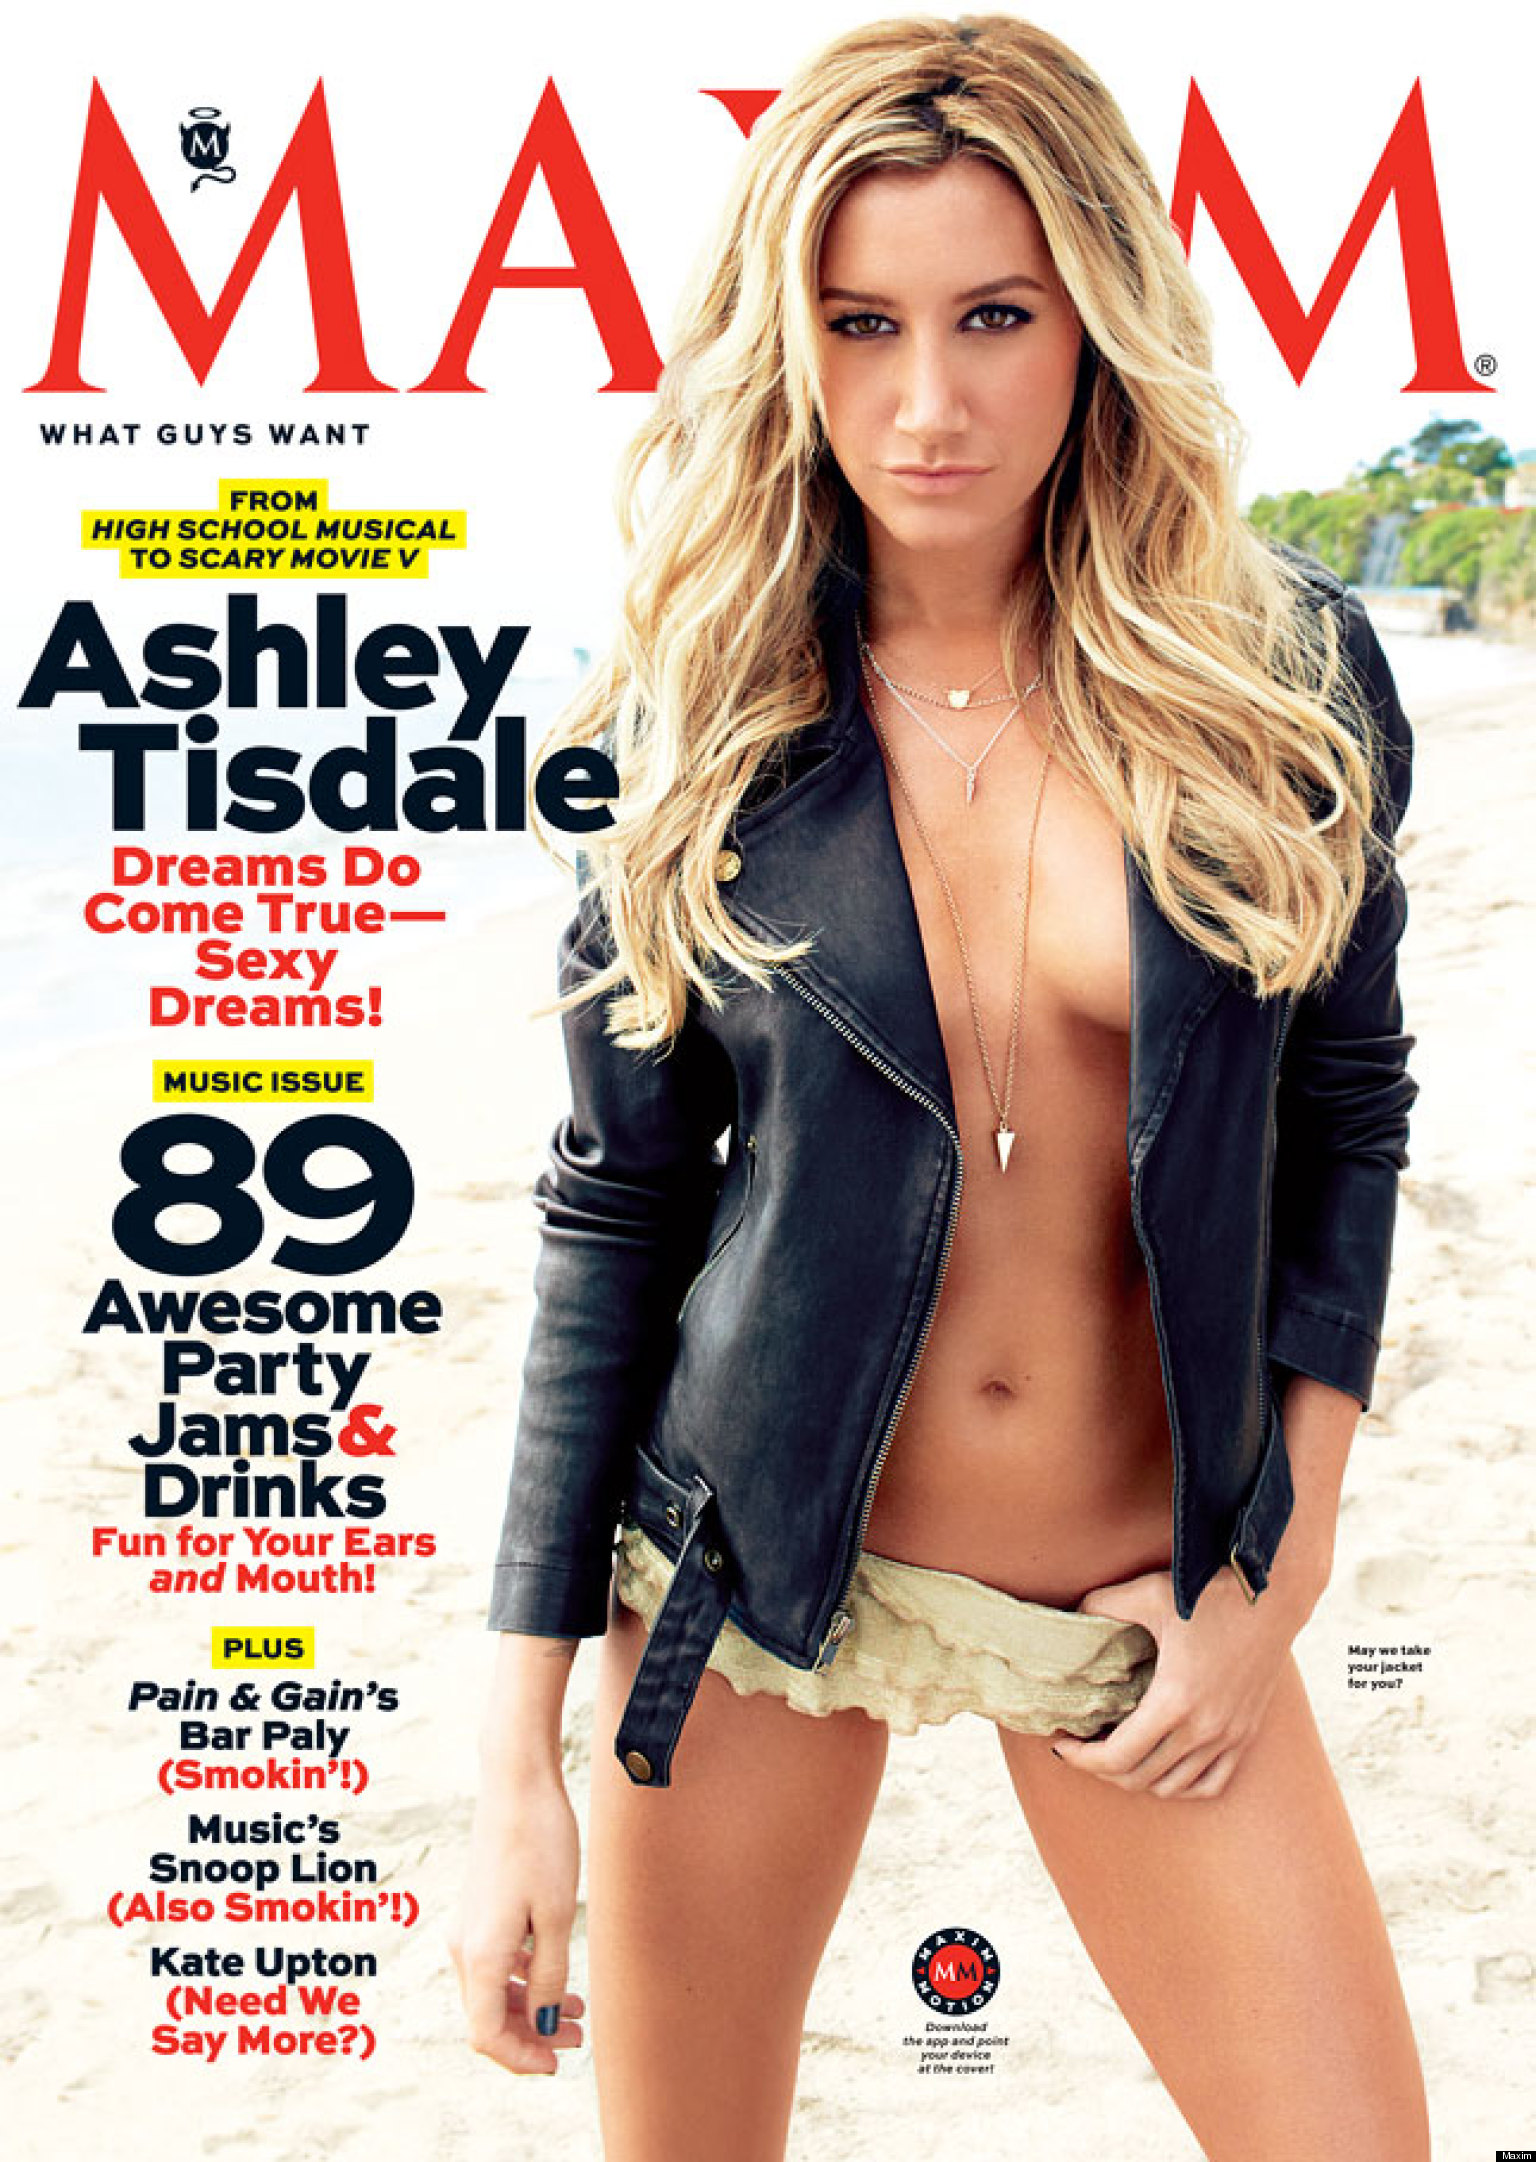 Hellcat Ashley Tisdale Nudes   Yolo Celebs HecklerSpray Perfect pout  Tisdale posed nude for a magazine last year stating that  she s not the